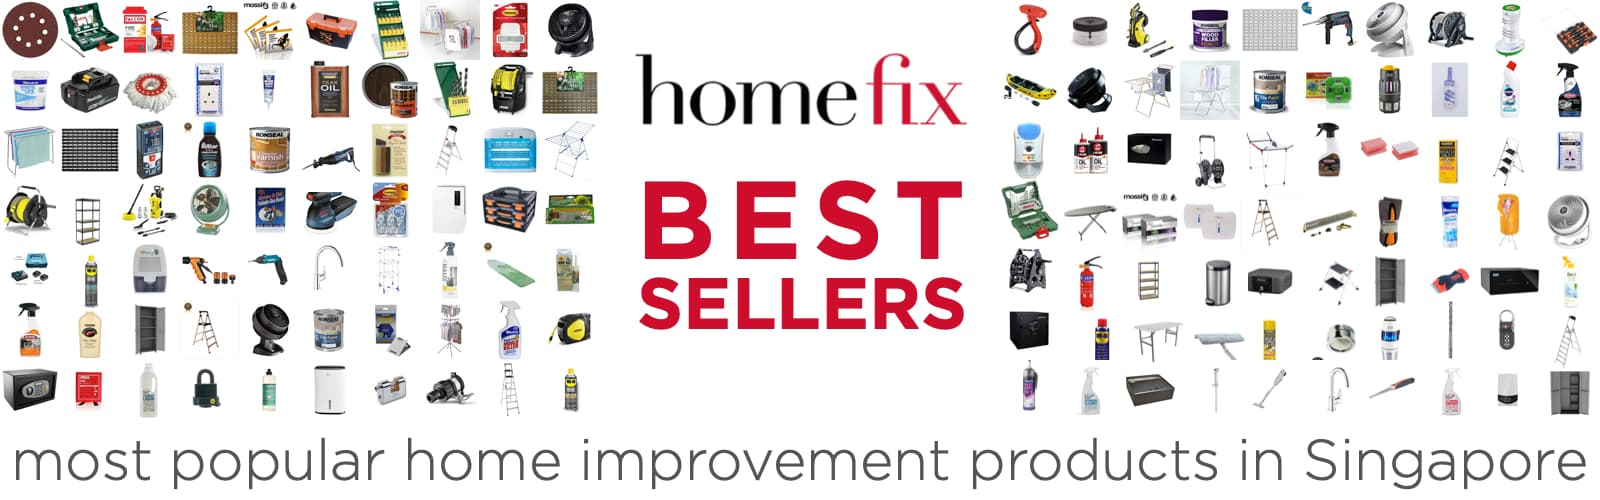 Homefix Singapore Home Improvement Best Sellers